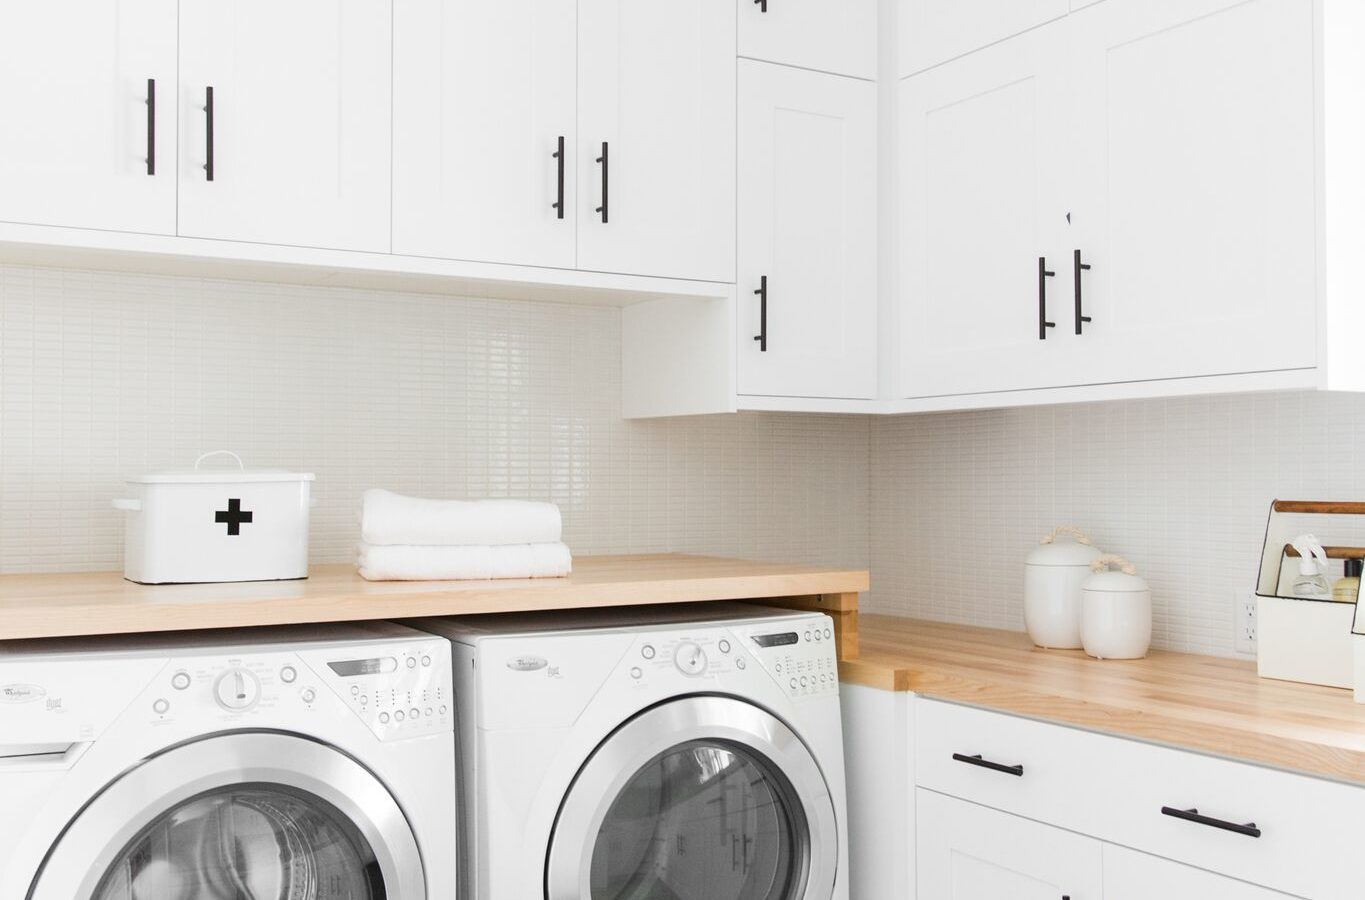 Riverbottoms Remodel: Laundry Room Before/After